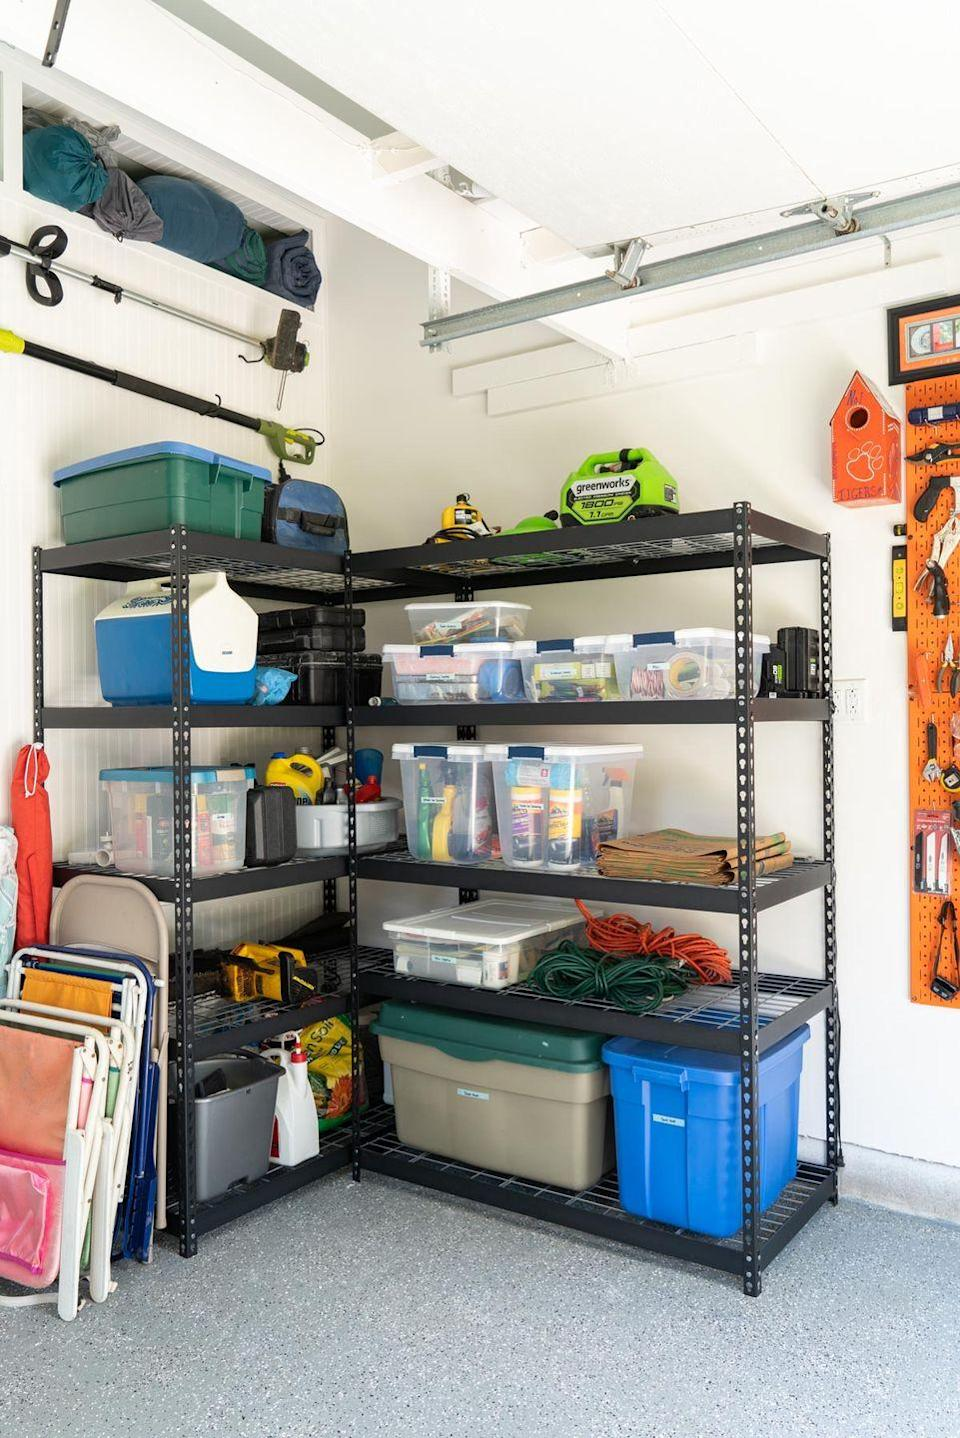 """<p>Stock up on a couple of sturdy metal shelves, line your garage walls with them, and get your bigger items, like power tools, out of the way in no time. Add bins for storing smaller bits that might otherwise end up scattered on the floor.</p><p><strong>Get the tutorial at <a href=""""https://abbymurphyphoto.com/garage-makeover/"""" rel=""""nofollow noopener"""" target=""""_blank"""" data-ylk=""""slk:Abby Murphy"""" class=""""link rapid-noclick-resp"""">Abby Murphy</a>.</strong></p><p><a class=""""link rapid-noclick-resp"""" href=""""https://www.amazon.com/AmazonBasics-4-Shelf-Shelving-Unit-Black/dp/B01LYBQXRH/ref=sr_1_5?tag=syn-yahoo-20&ascsubtag=%5Bartid%7C10050.g.36449426%5Bsrc%7Cyahoo-us"""" rel=""""nofollow noopener"""" target=""""_blank"""" data-ylk=""""slk:SHOP METAL SHELVES"""">SHOP METAL SHELVES</a><br></p>"""